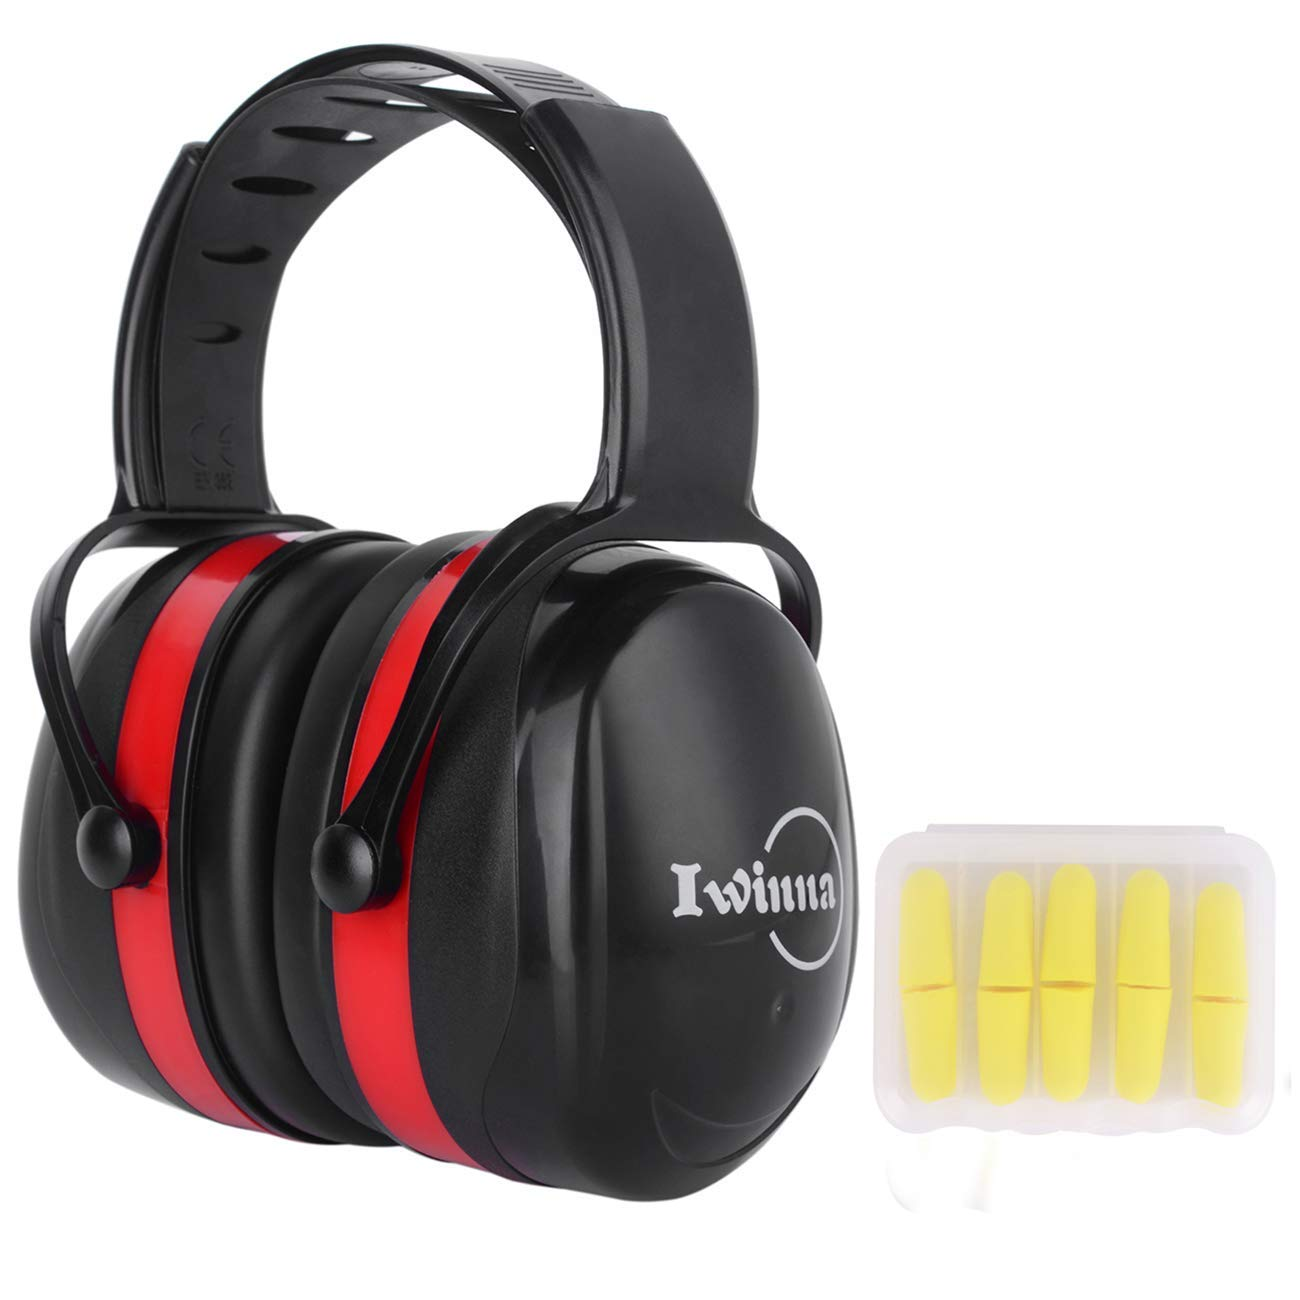 Safety Ear Muffs Hearing Protection Headphones Adjustable Adult Noise Reduction Youth Ear Defenders Noise Cancelling Earmuffs for Working Shooting Hunting Welding Mowing Construction, Black+Red